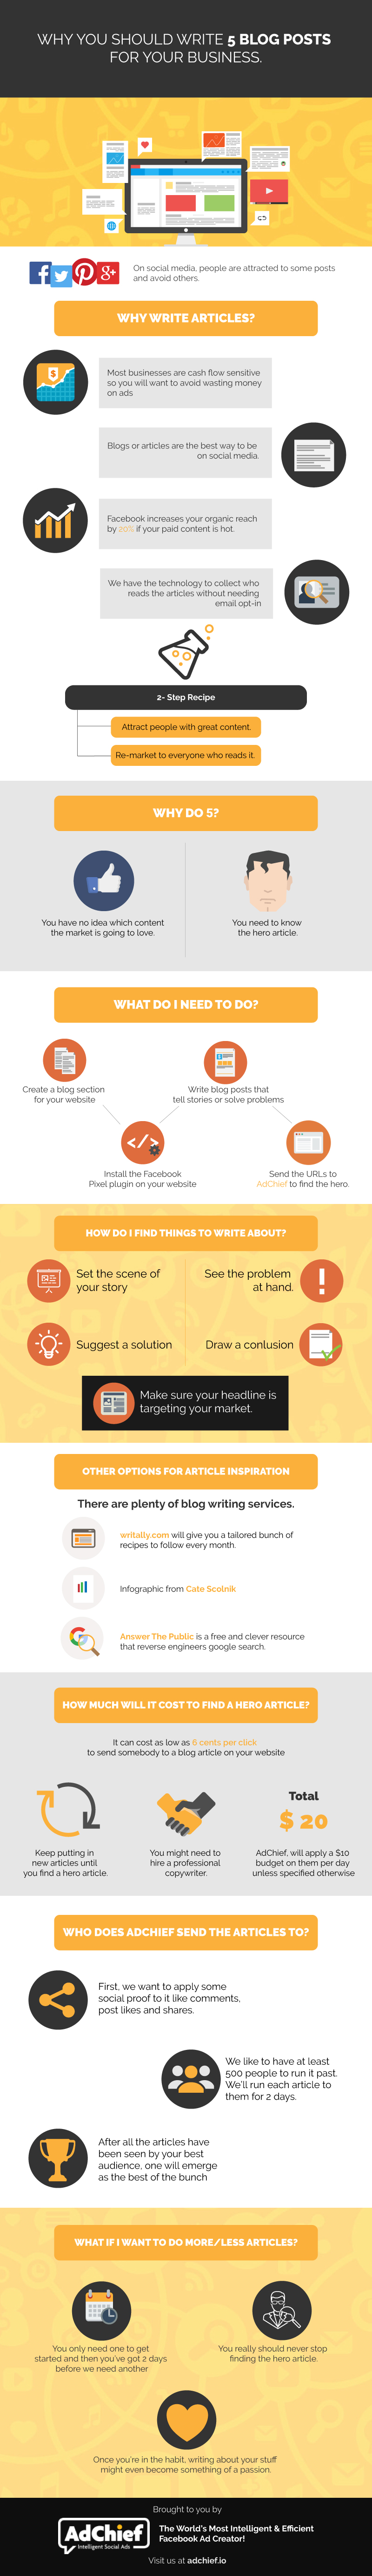 Why You Should Write 5 Blog Posts for Your Business Infographic